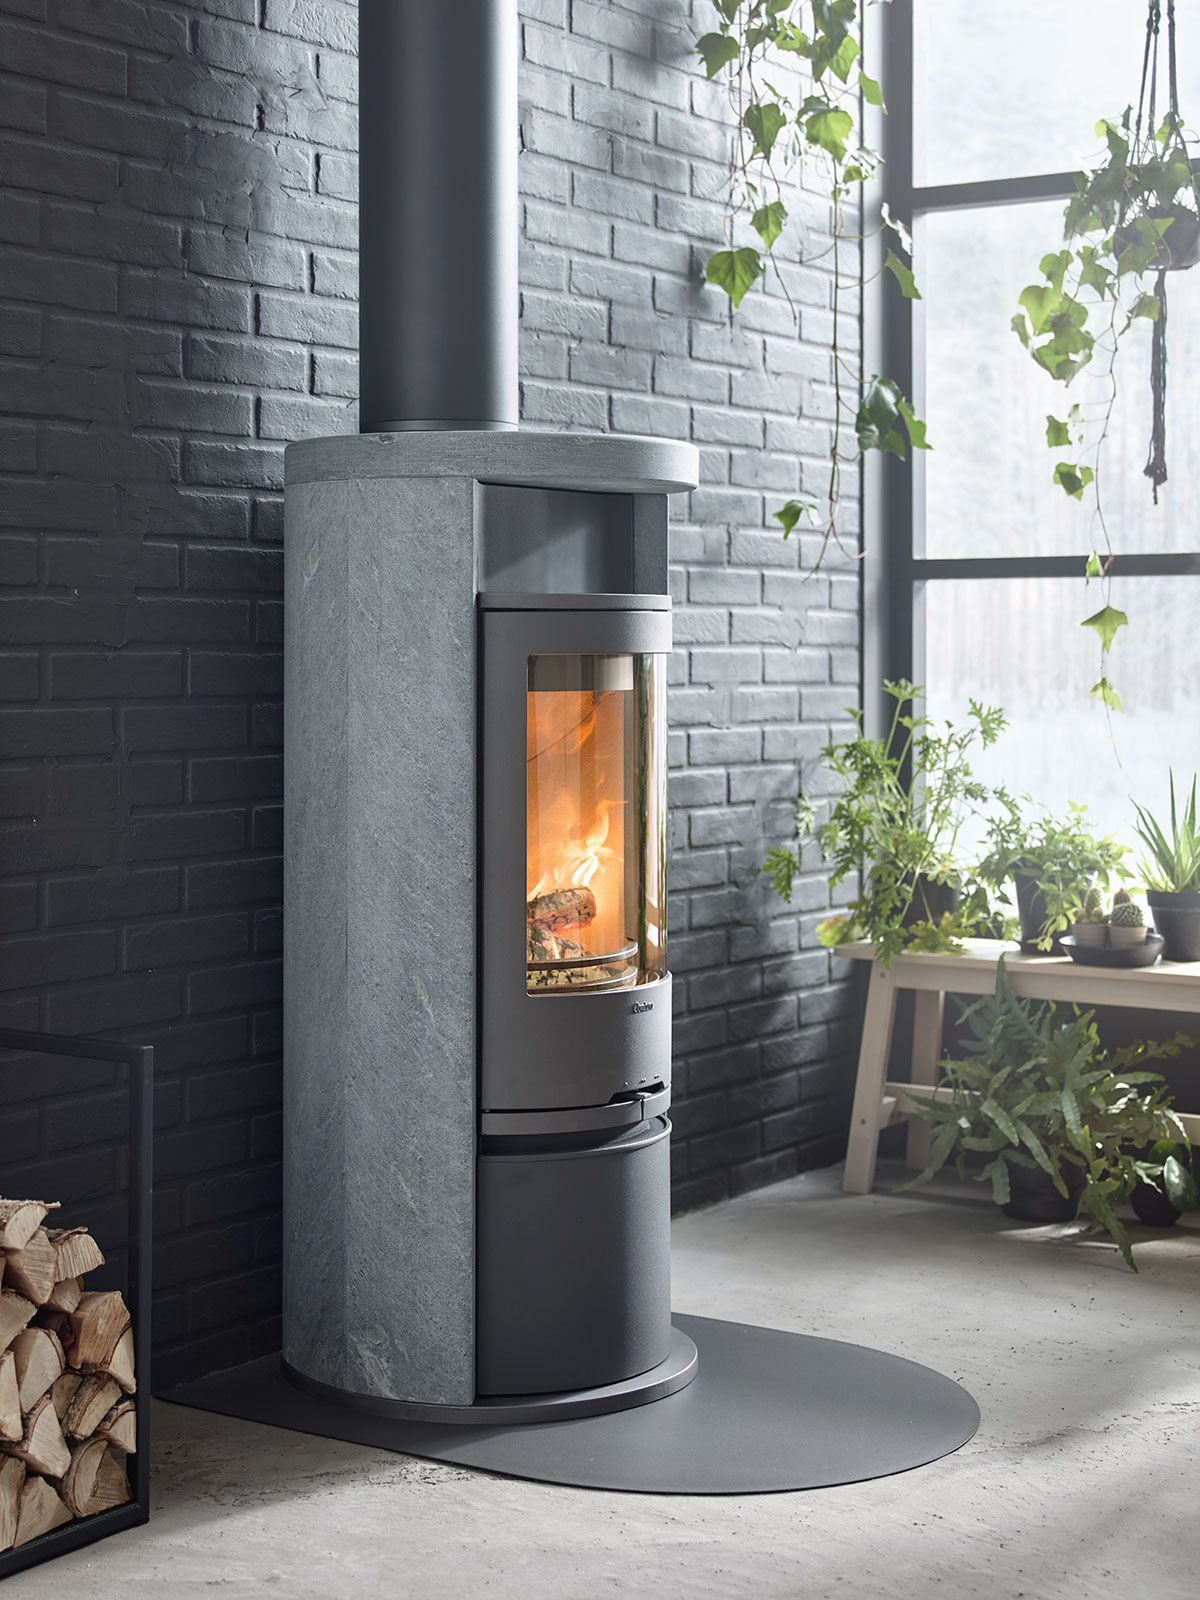 Kaminofen Contura 620 T Contura 620t Has A Surround In Heat Retaining Soapstone The